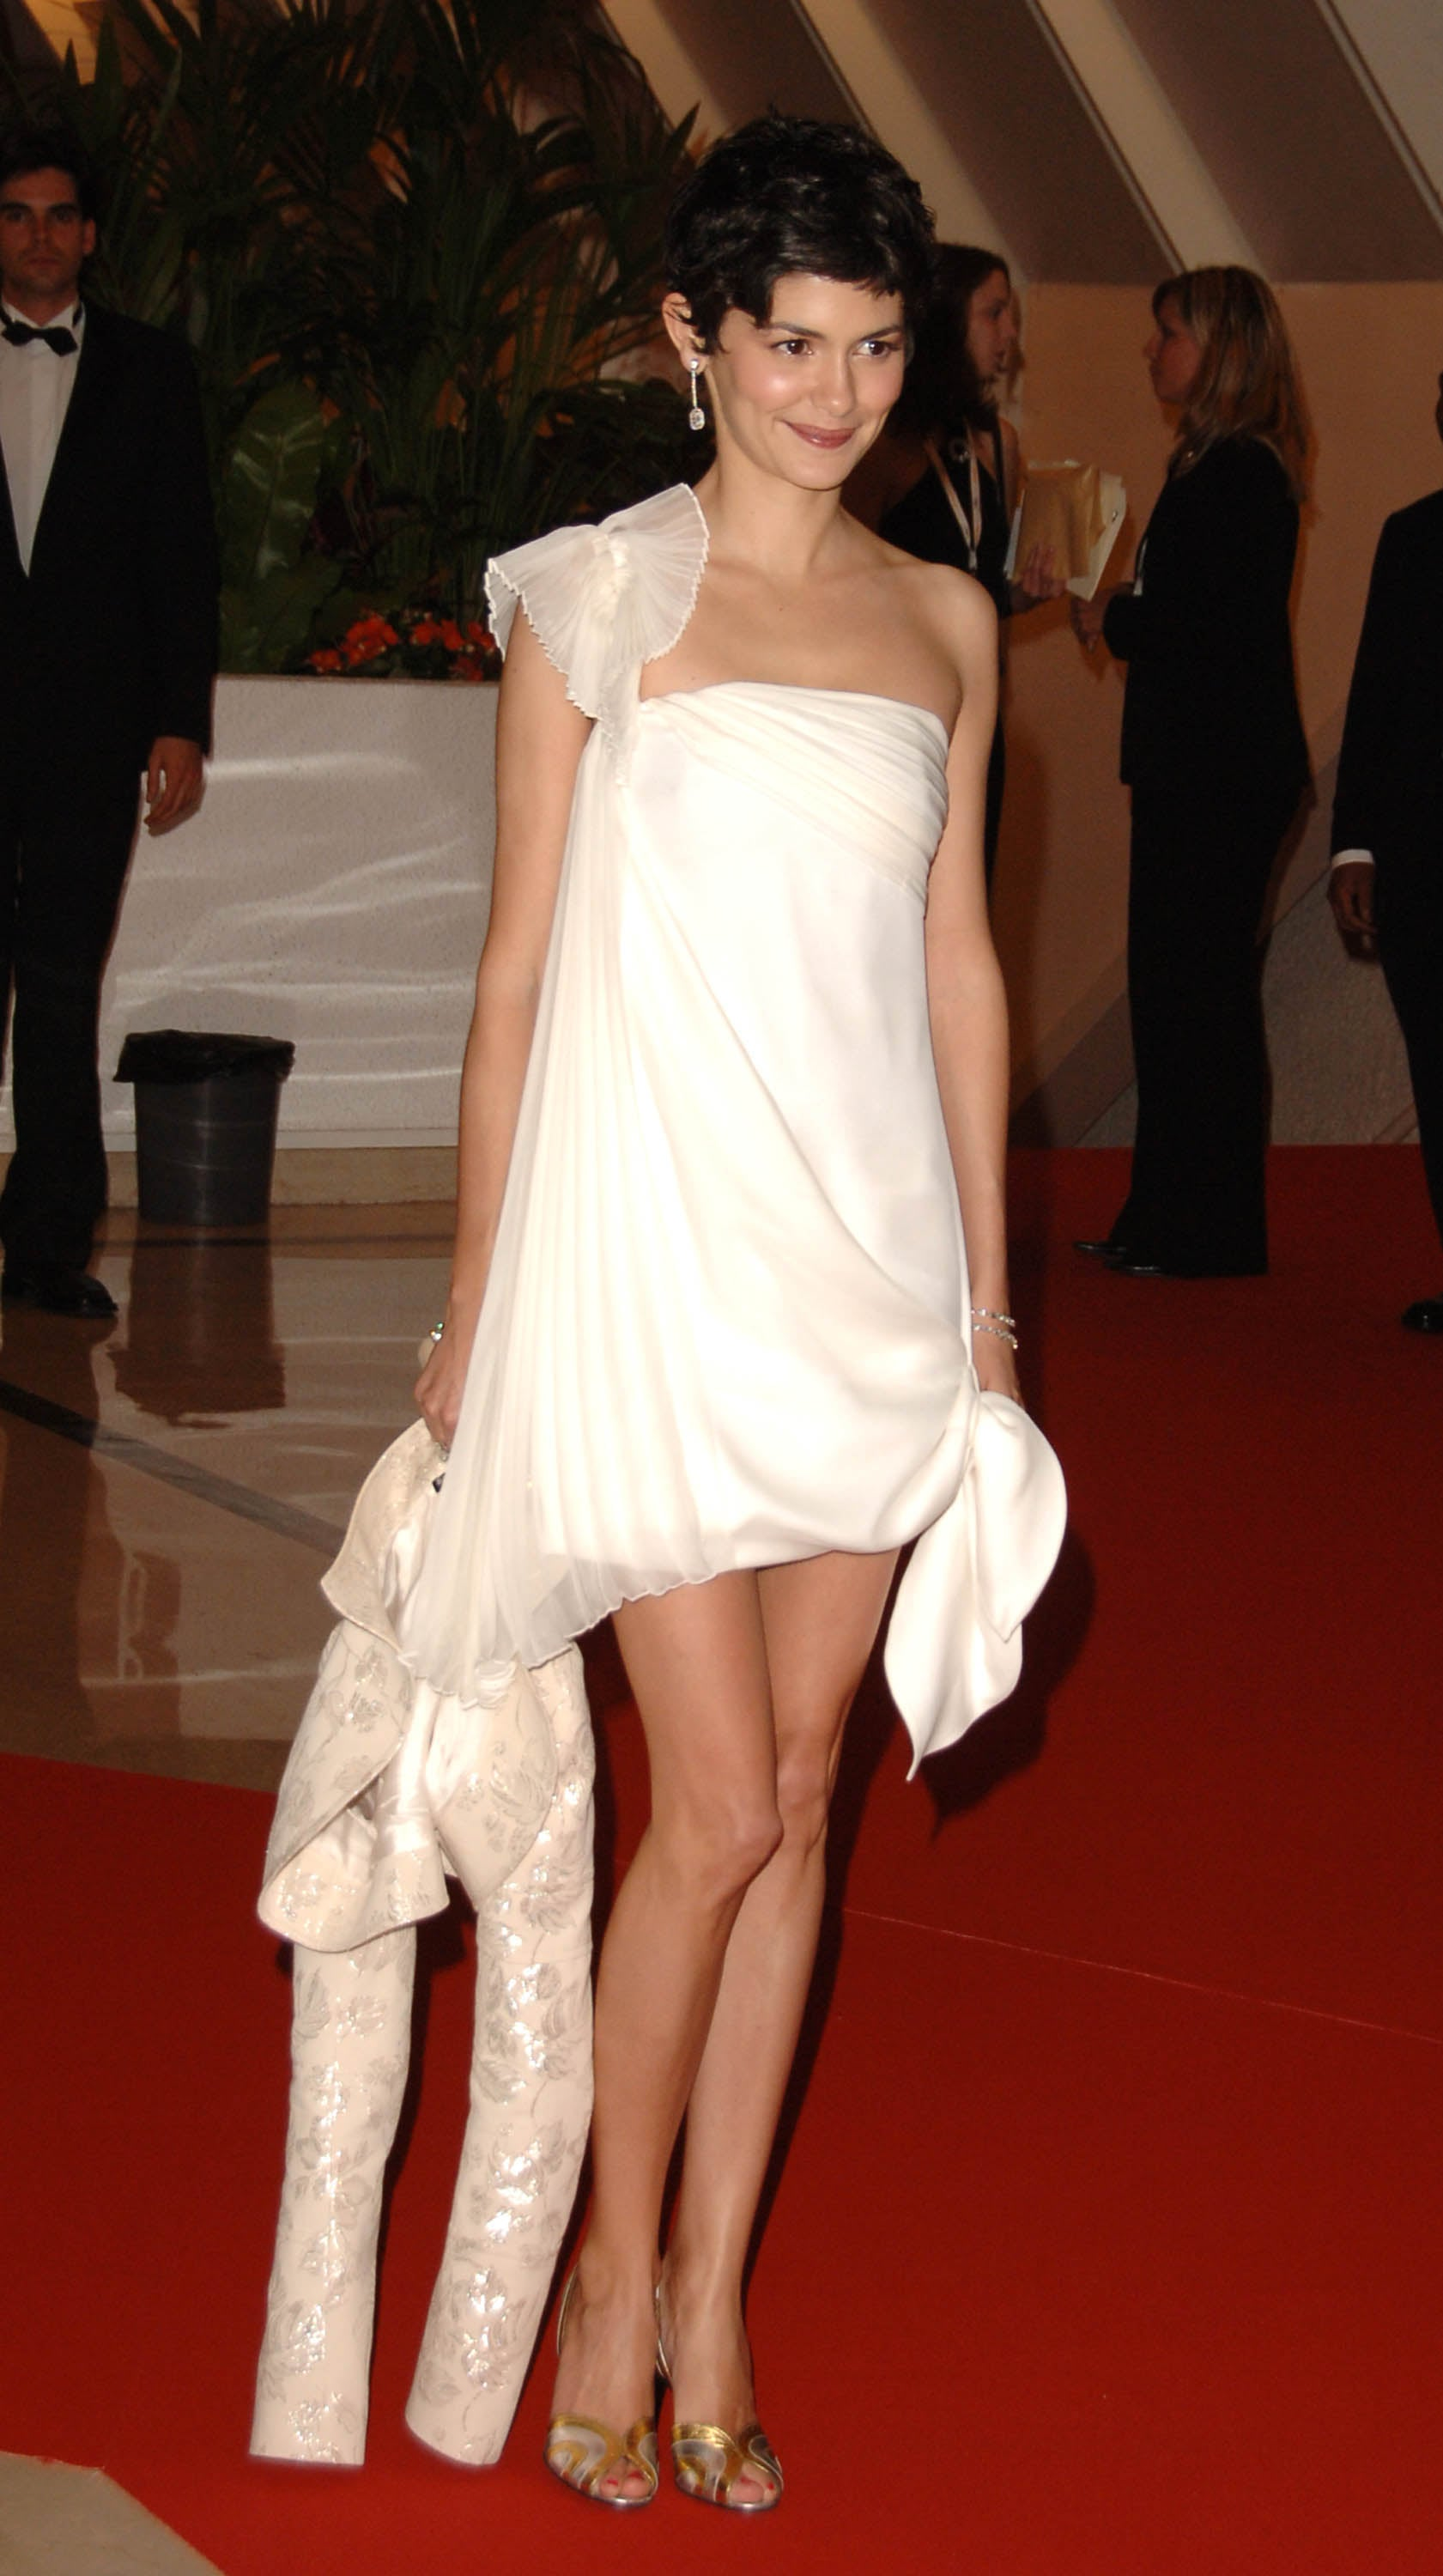 Audrey Tatou wore a white cocktail dress and jacket to the festival's gala dinner in 2006.